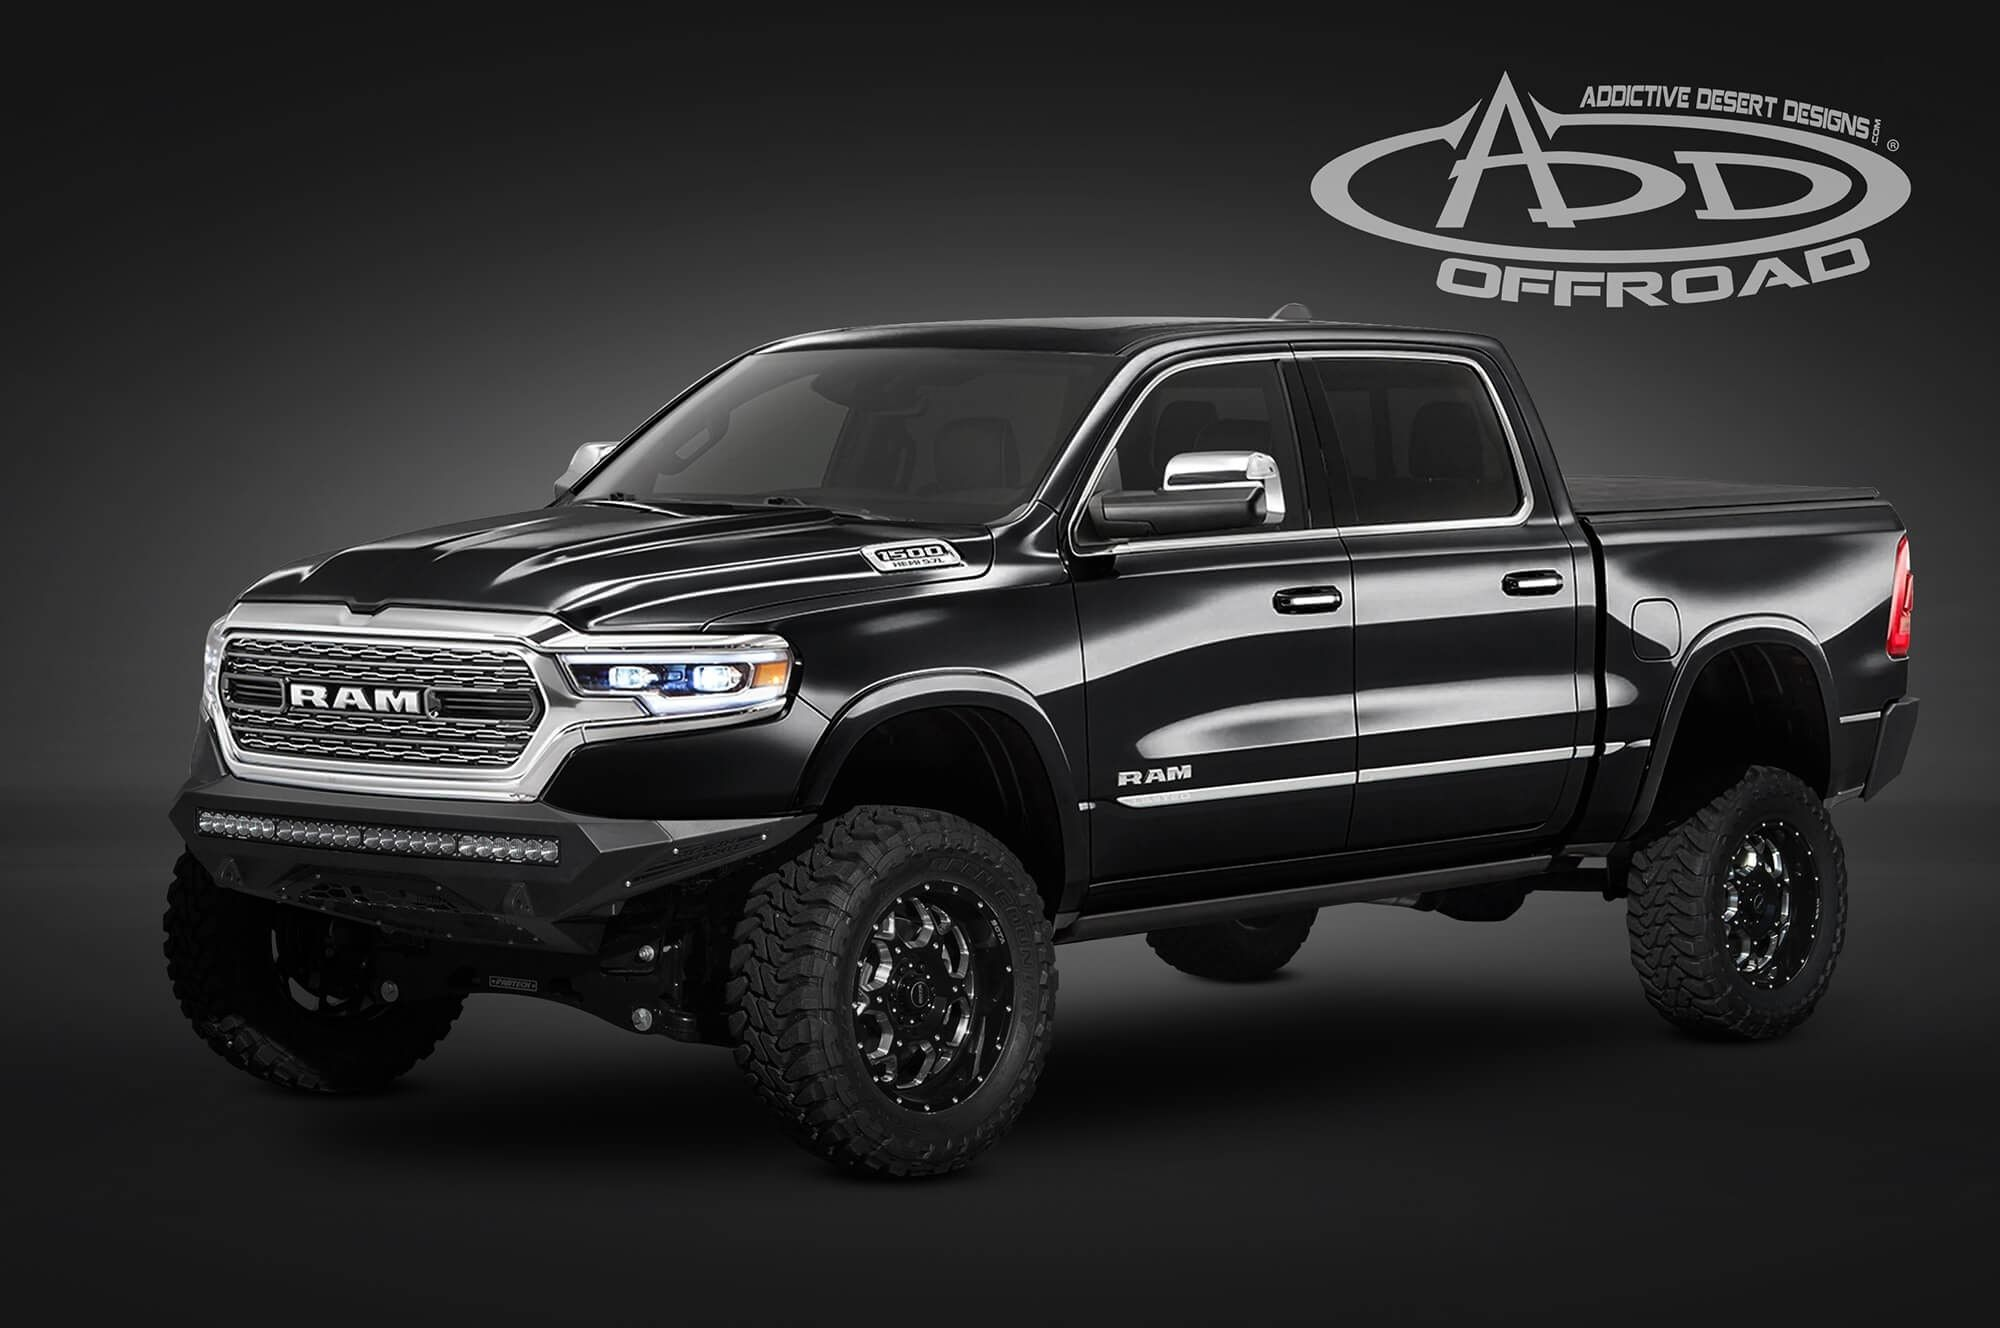 2019 Dodge Ram 1500 Interior Exterior And Review With Images Dodge Ram 1500 Dodge Ram Dodge Ram 3500